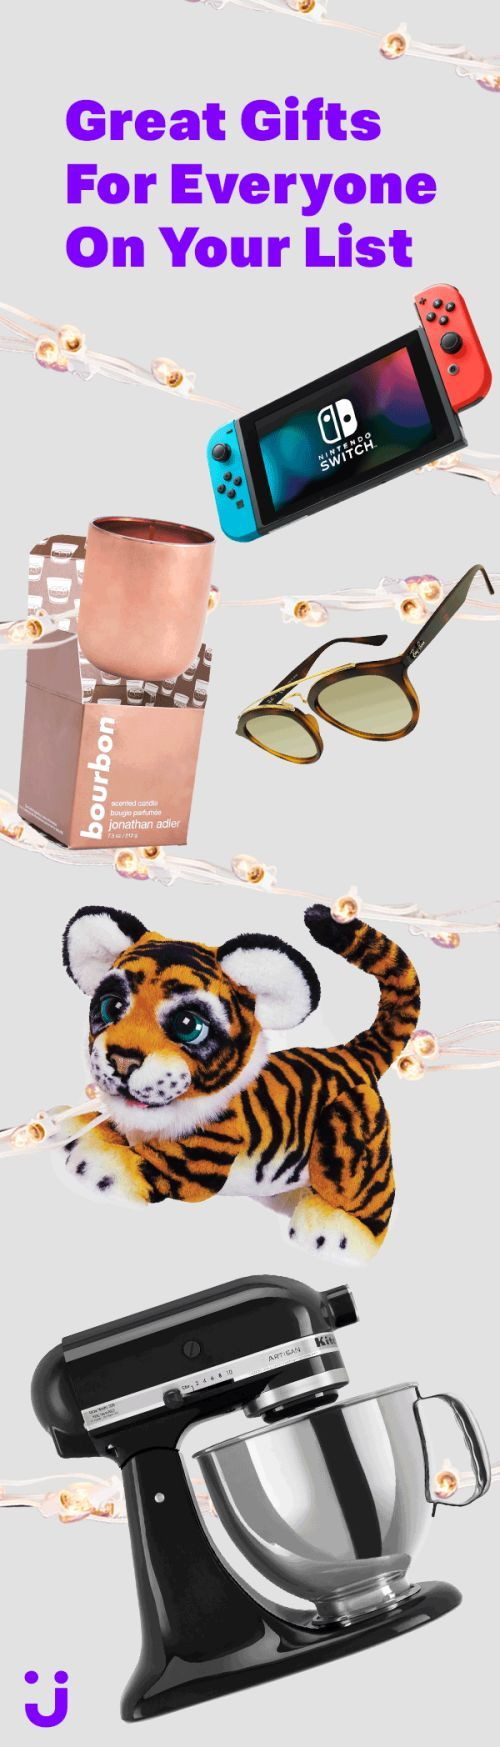 Lighters Tiger - a stylish and original solution for a gift